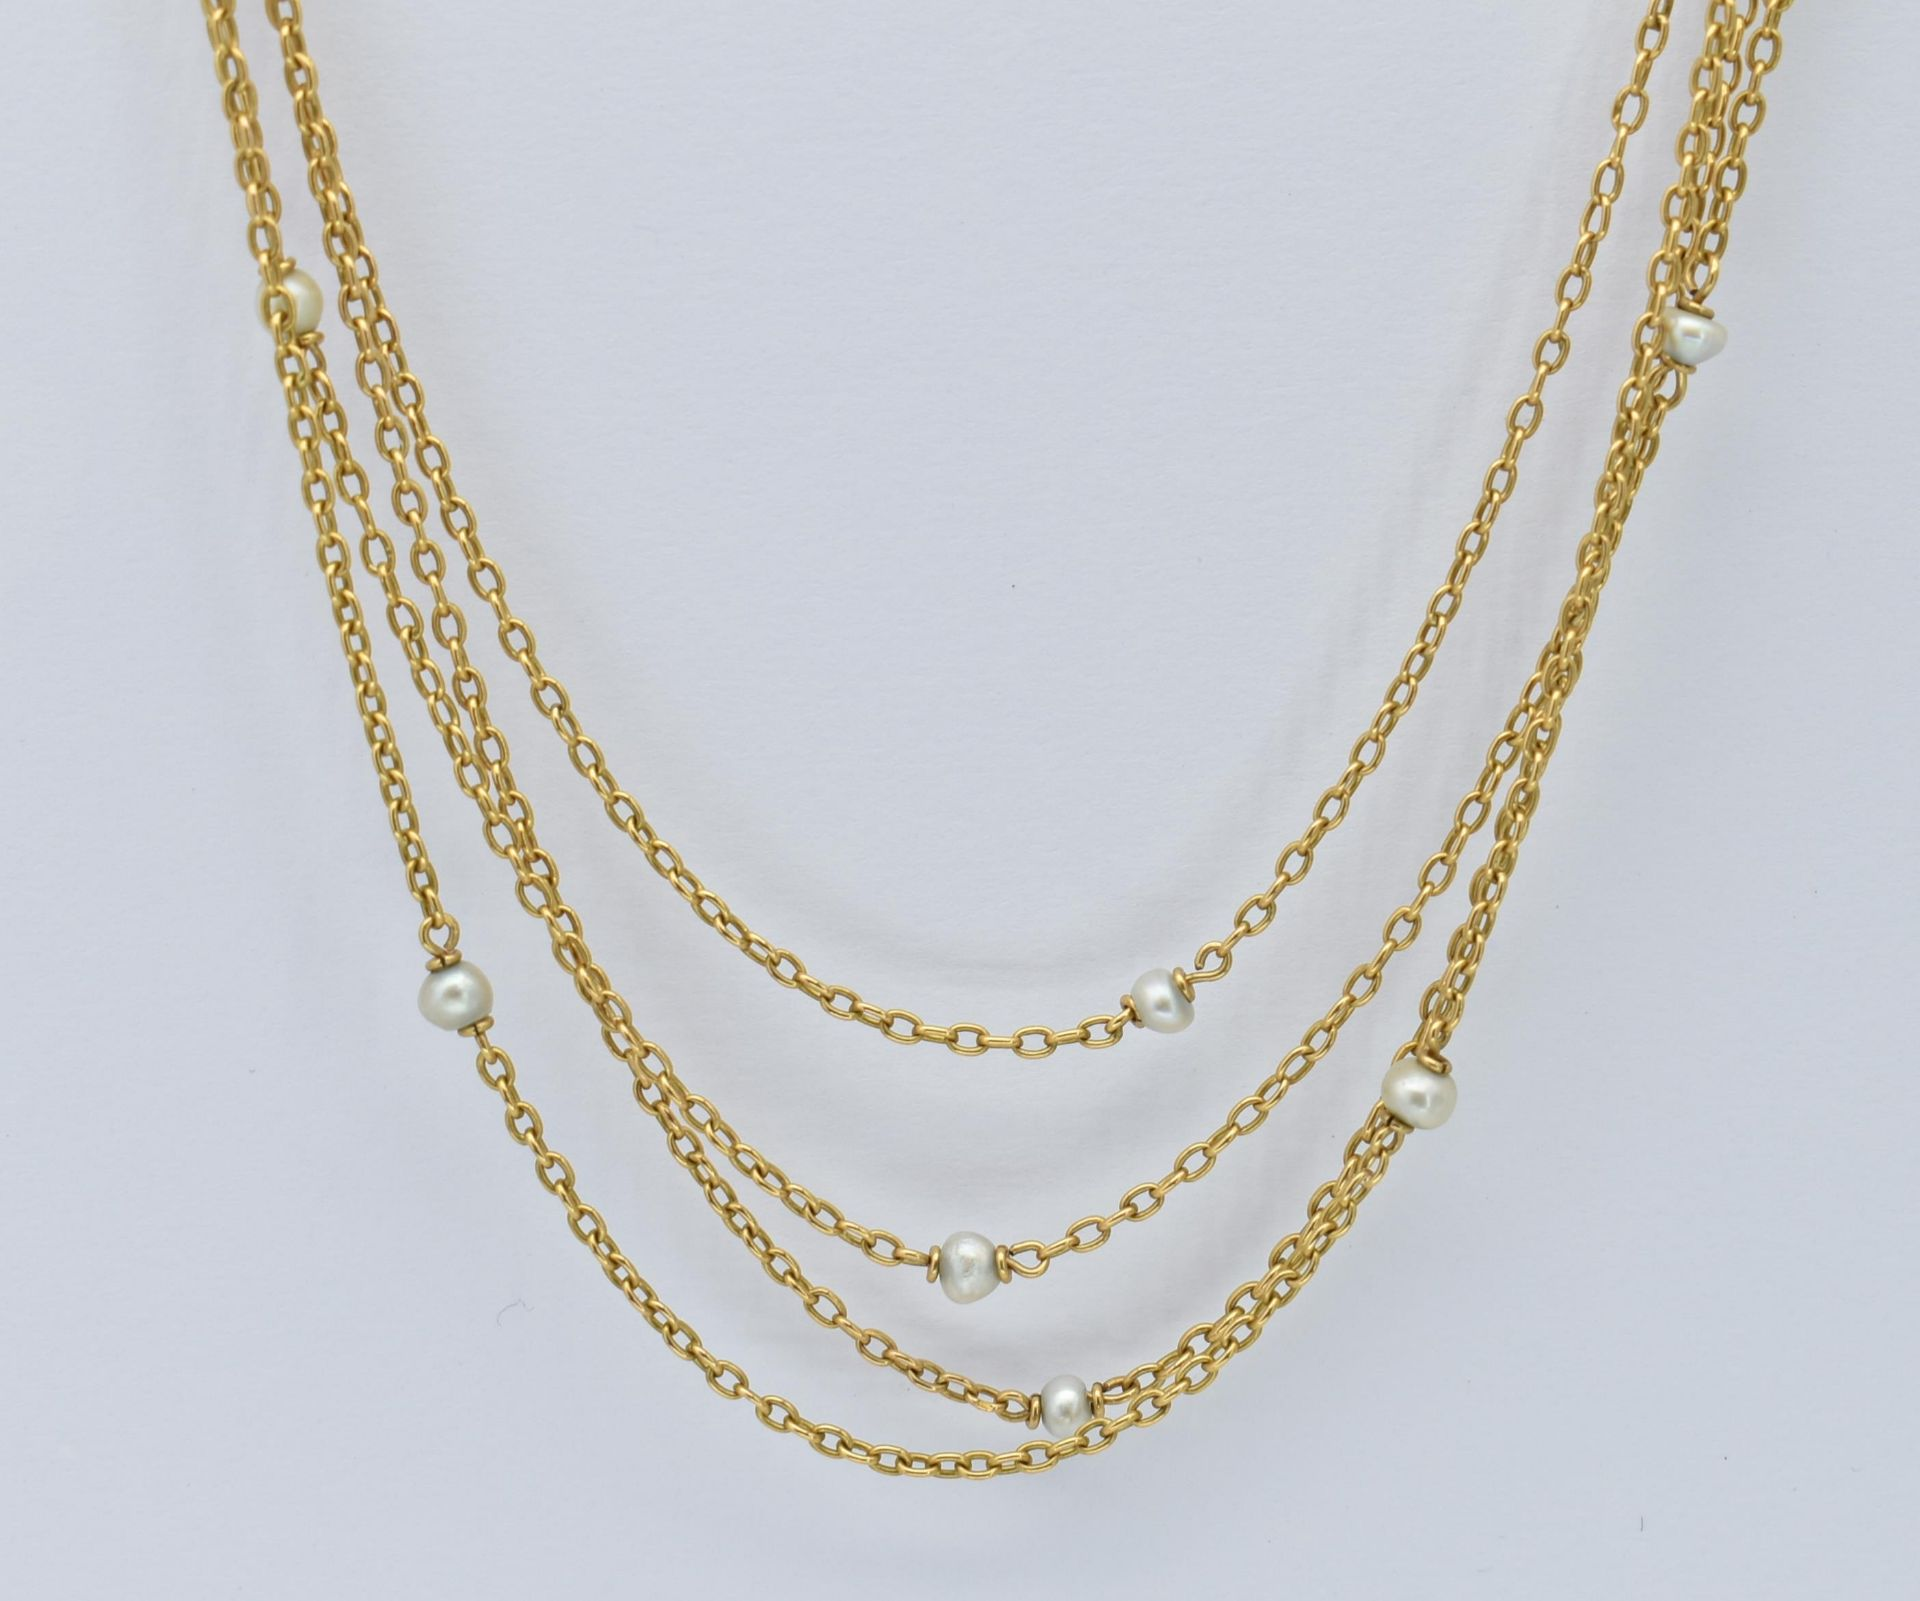 French 18ct Gold & Pearl Four Strand Necklace - Image 4 of 4